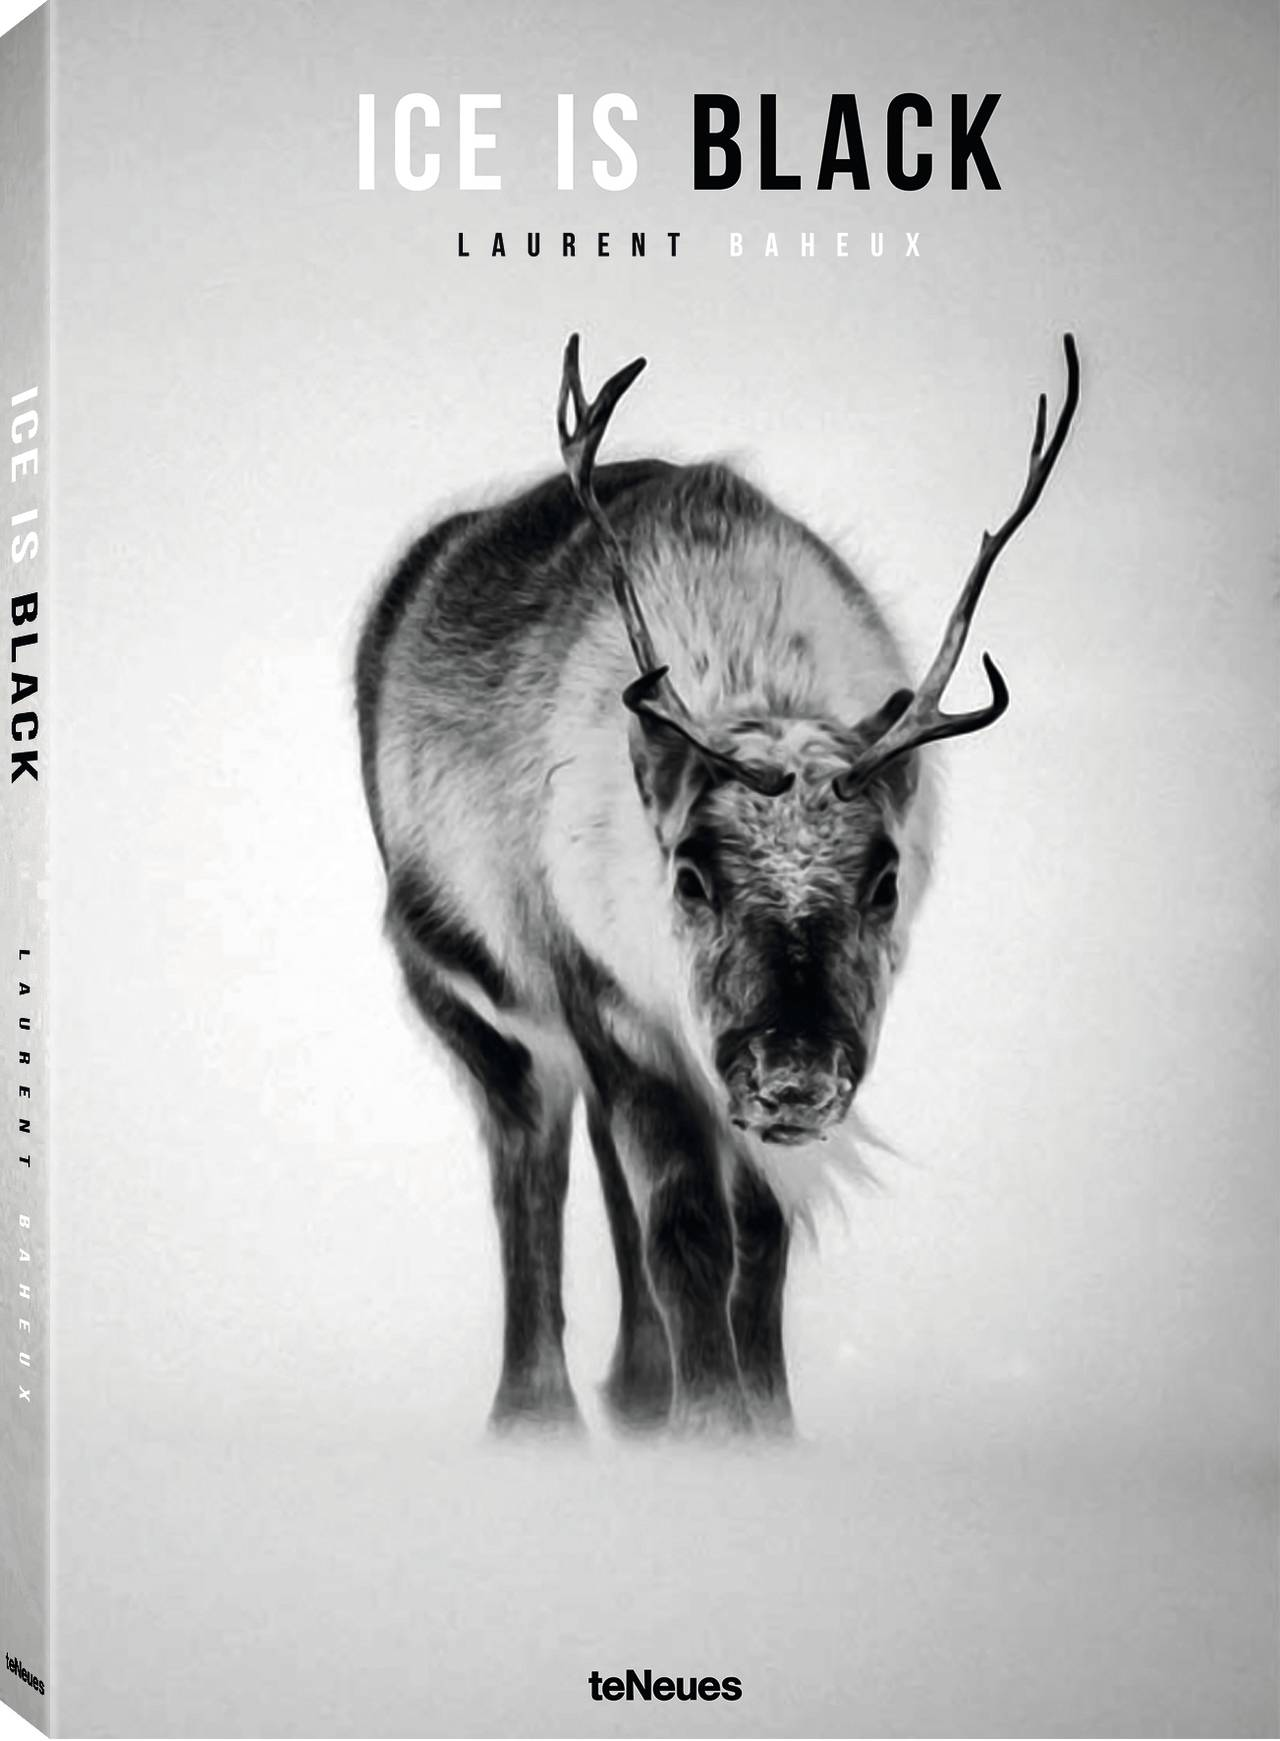 Ice is Black by Laurent Baheux, published by teNeues, www.teneues.com, Reindeer through the snow, Svalbard 2014, Photo © Laurent Baheux